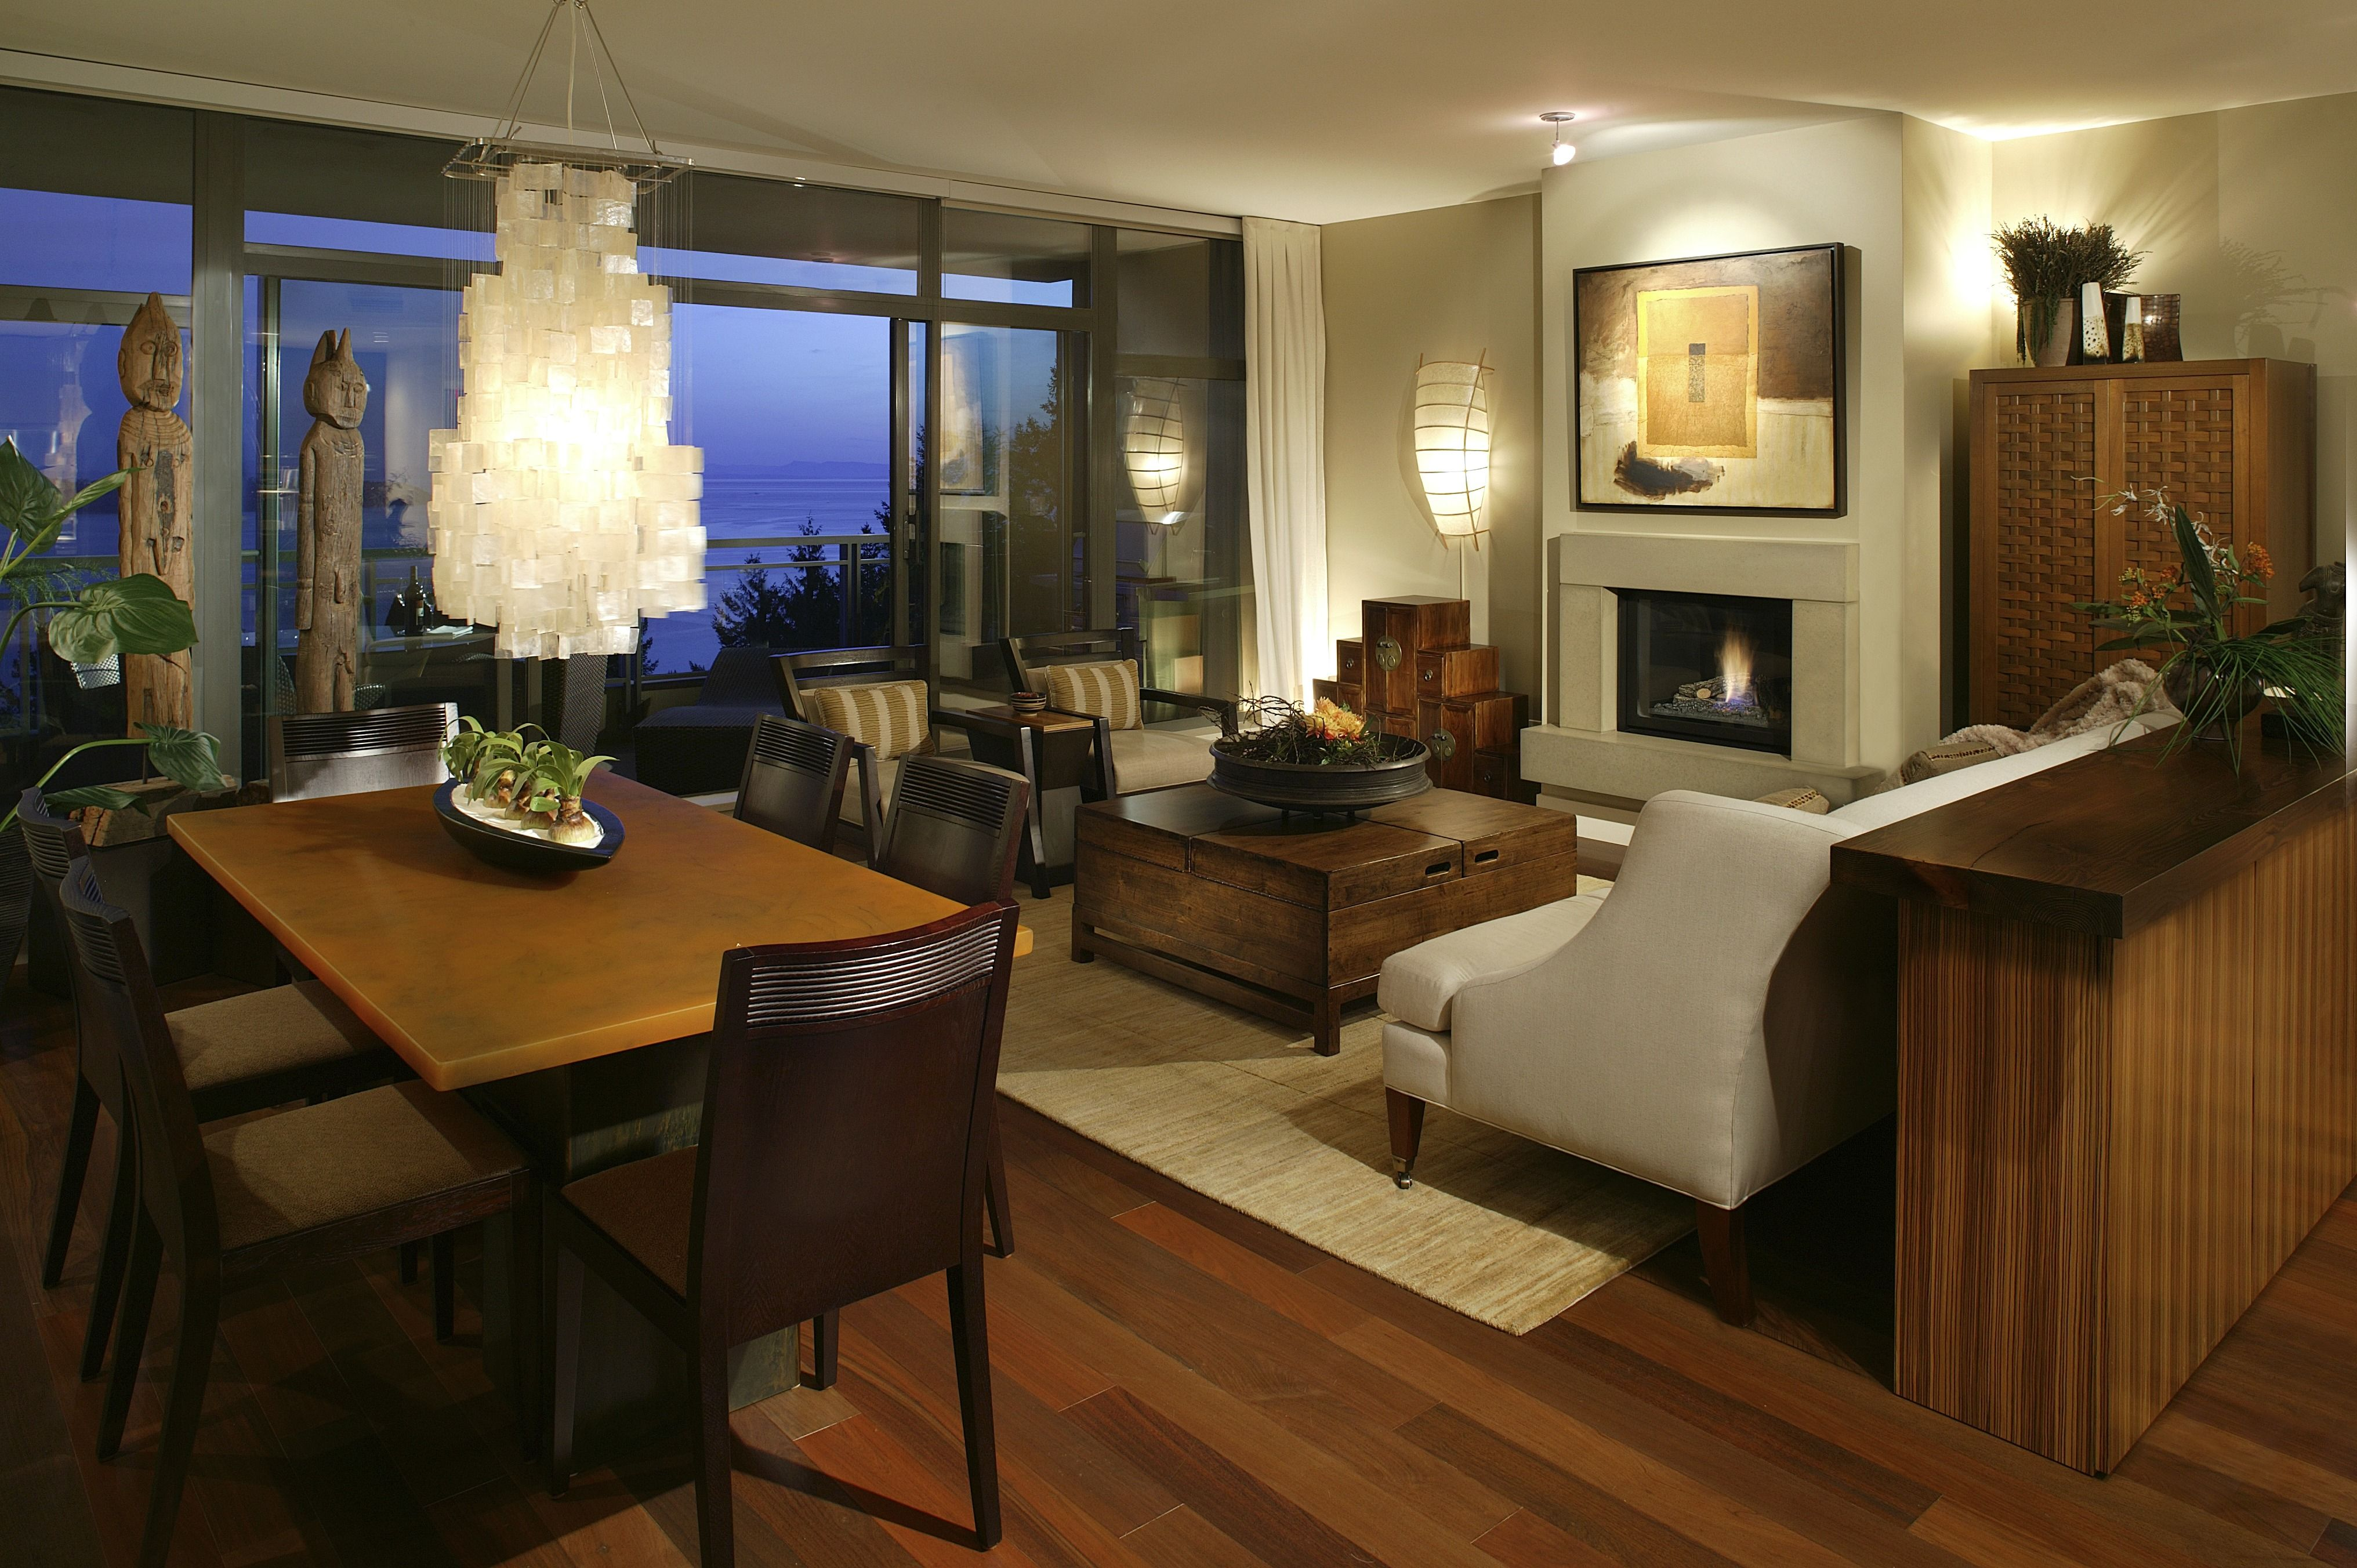 How to choose lighting fixtures for your dining room and - Choosing lighting for living room ...